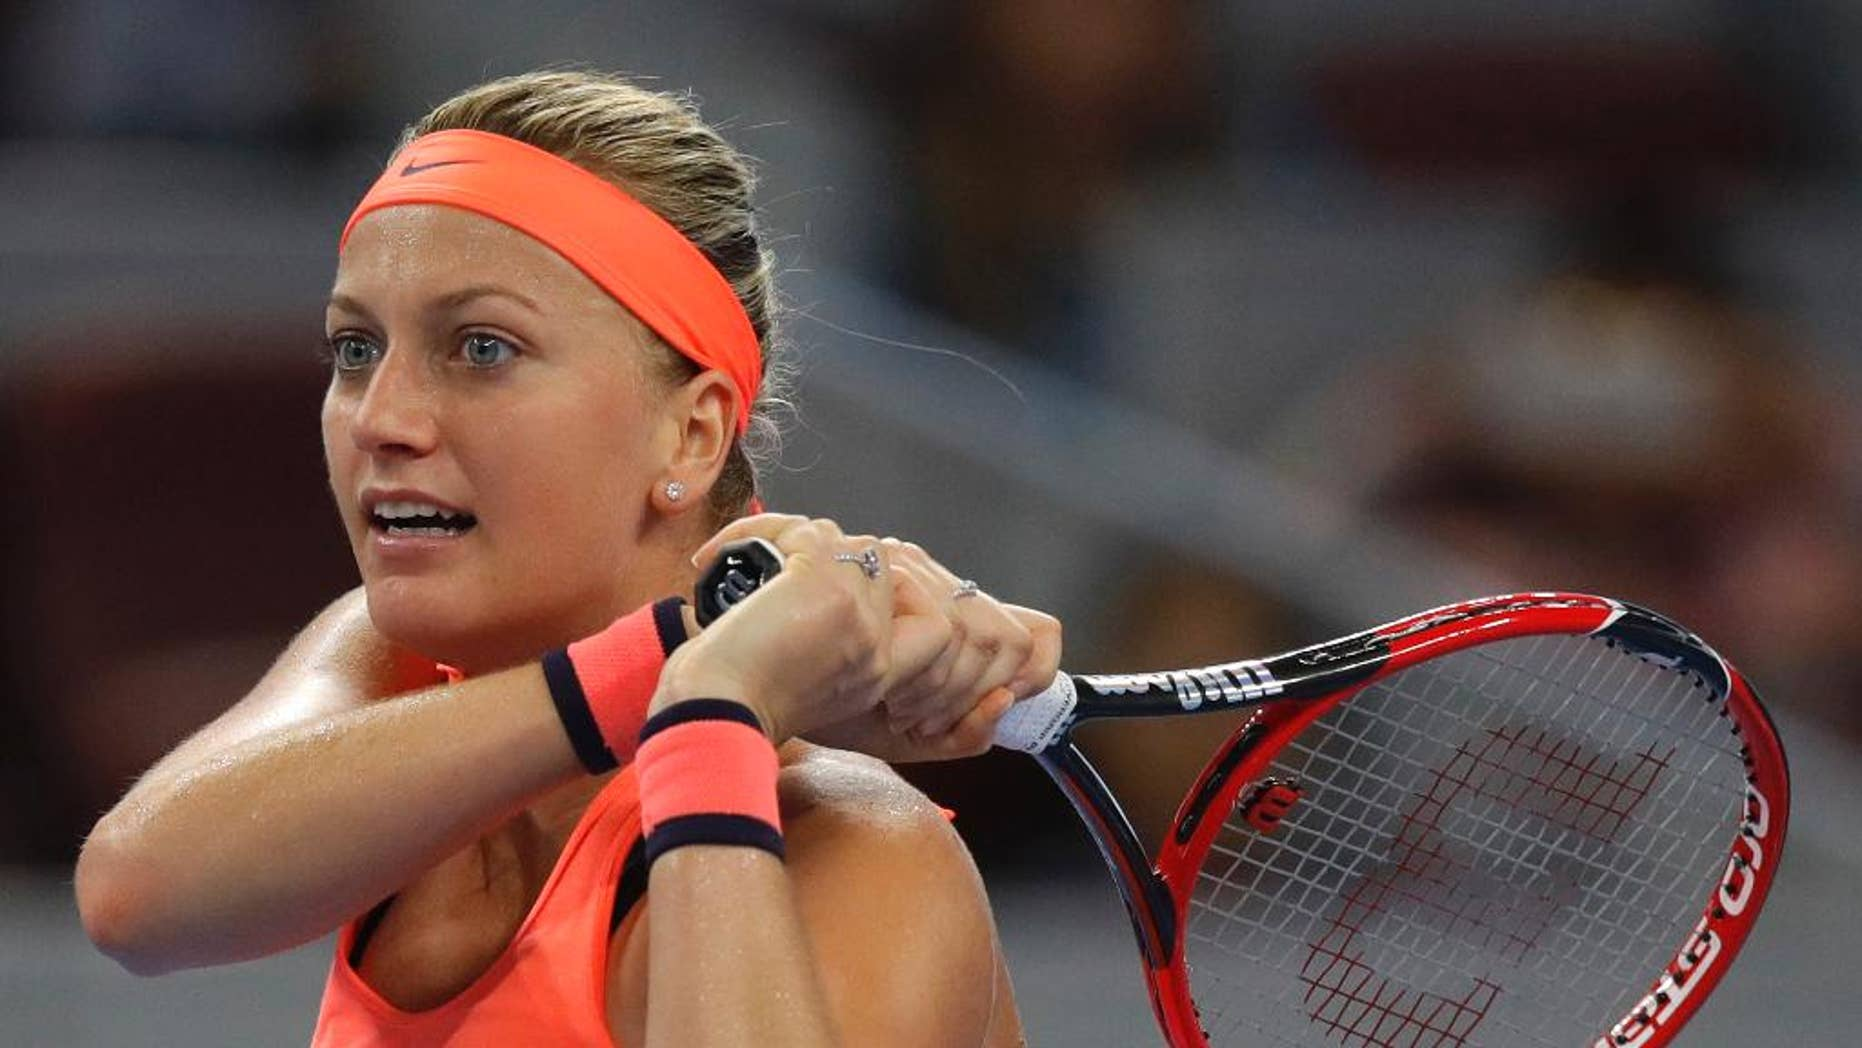 FILE - In this Oct. 4, 2016, file photo, Petra Kvitova, of the Czech Republic, watches her shot during her women's singles match against Wang Yafan of China at the China Open tennis tournament in Beijing. Two-time Wimbledon champion Petra Kvitova is back at practice, less than six months after being attacked by a knife-wielding intruder. Kvitova posted a photo on Instagram on Tuesday, May 2, 2017, showing herself swinging a tennis racket. (AP Photo/Andy Wong, File)